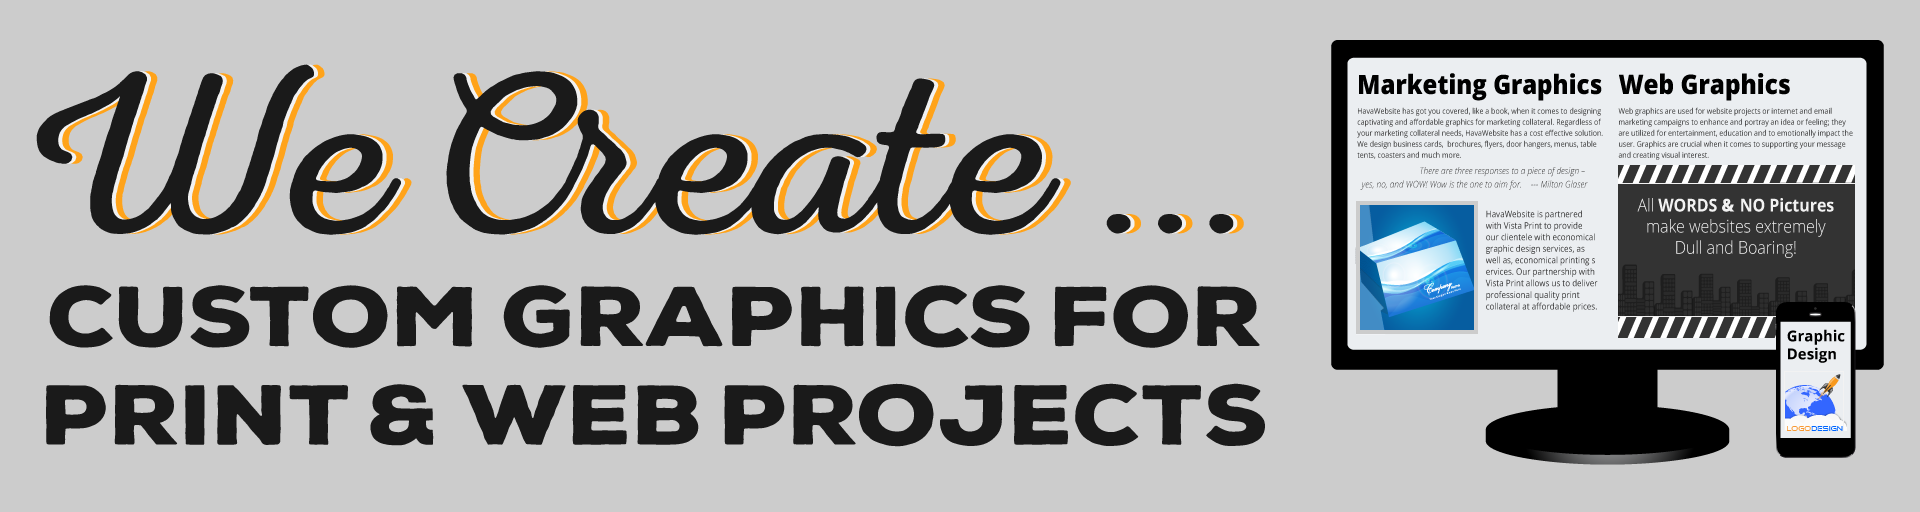 havawebsite custome graphics for print and web projects